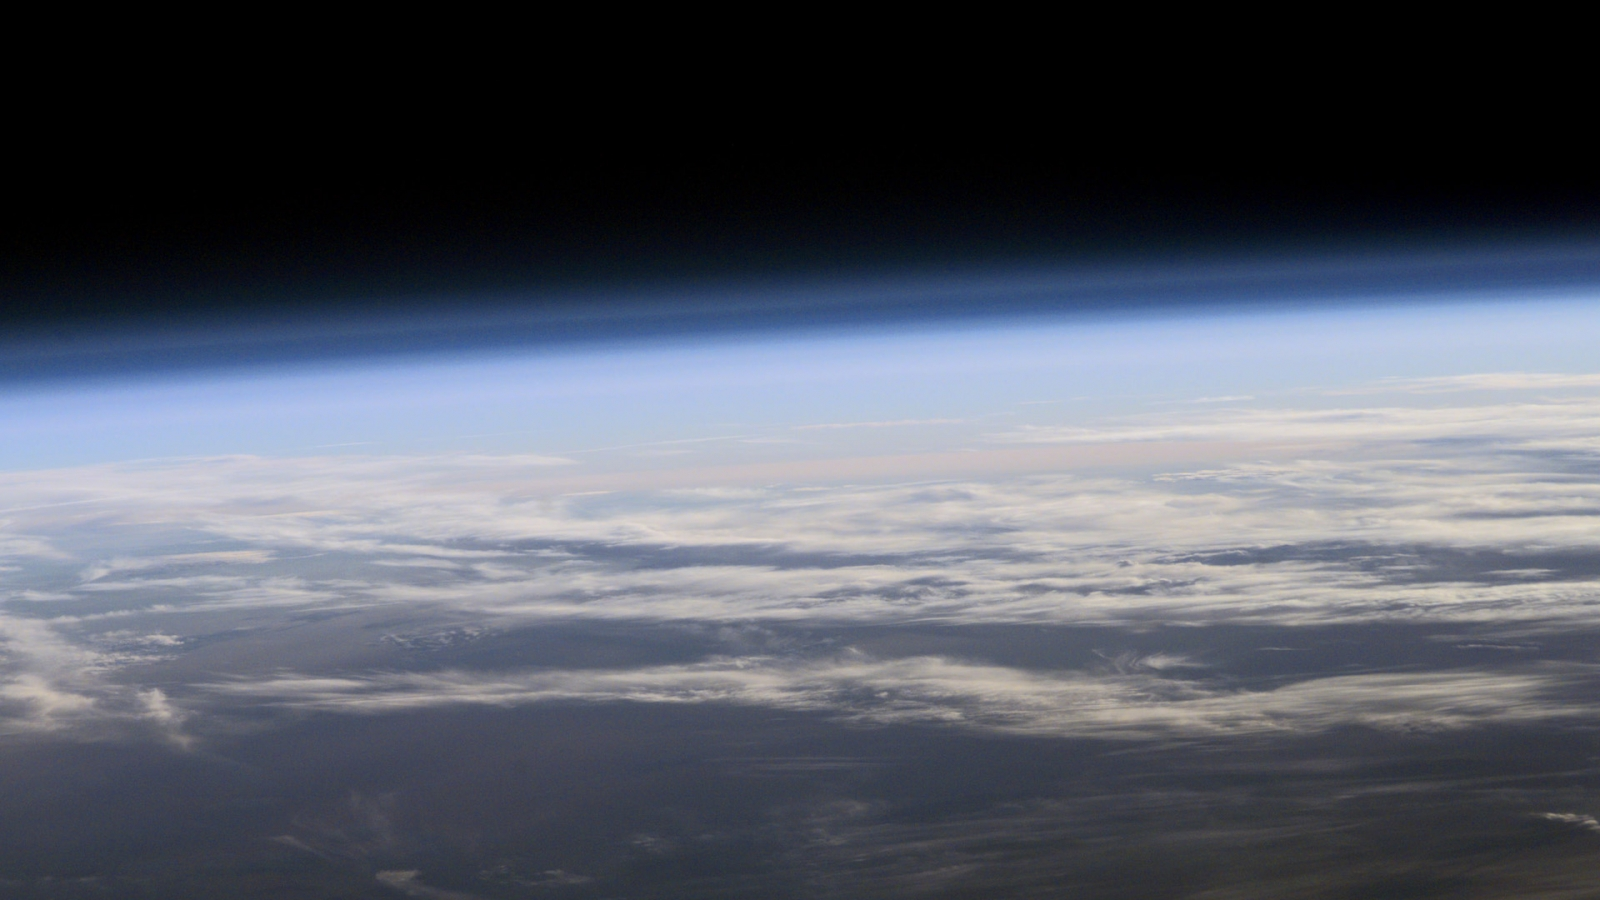 New NASA Data Suggests The Hole In The Ozone Layer Is Shrinking